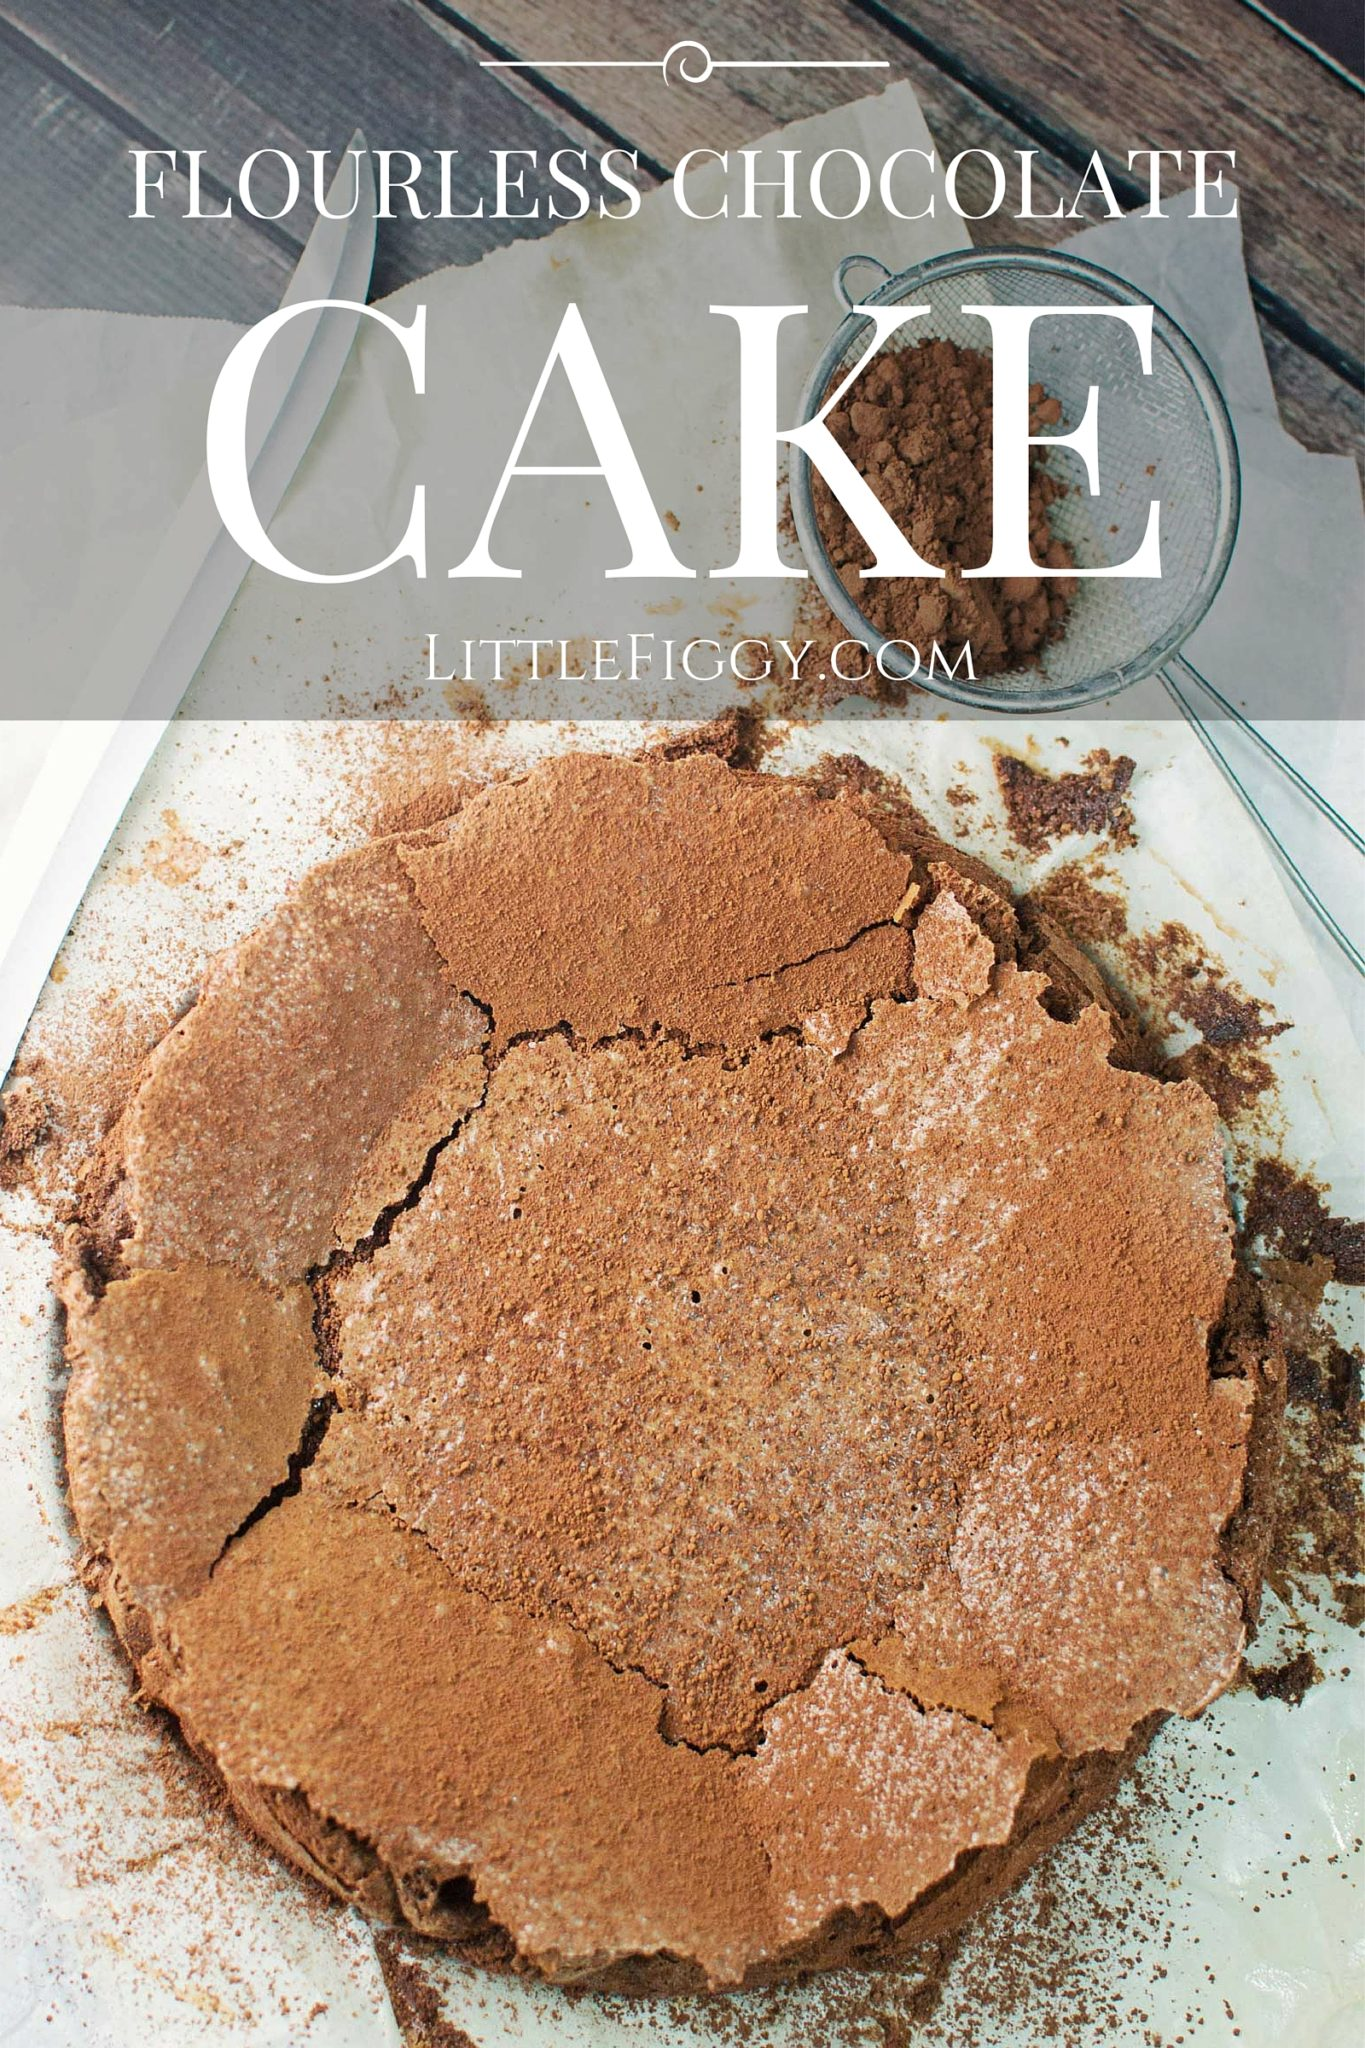 Flourless Chocolate Cake - an almost brownie like cake and it makes for a perfect finish to any day. Recipe found @LittleFiggyFood